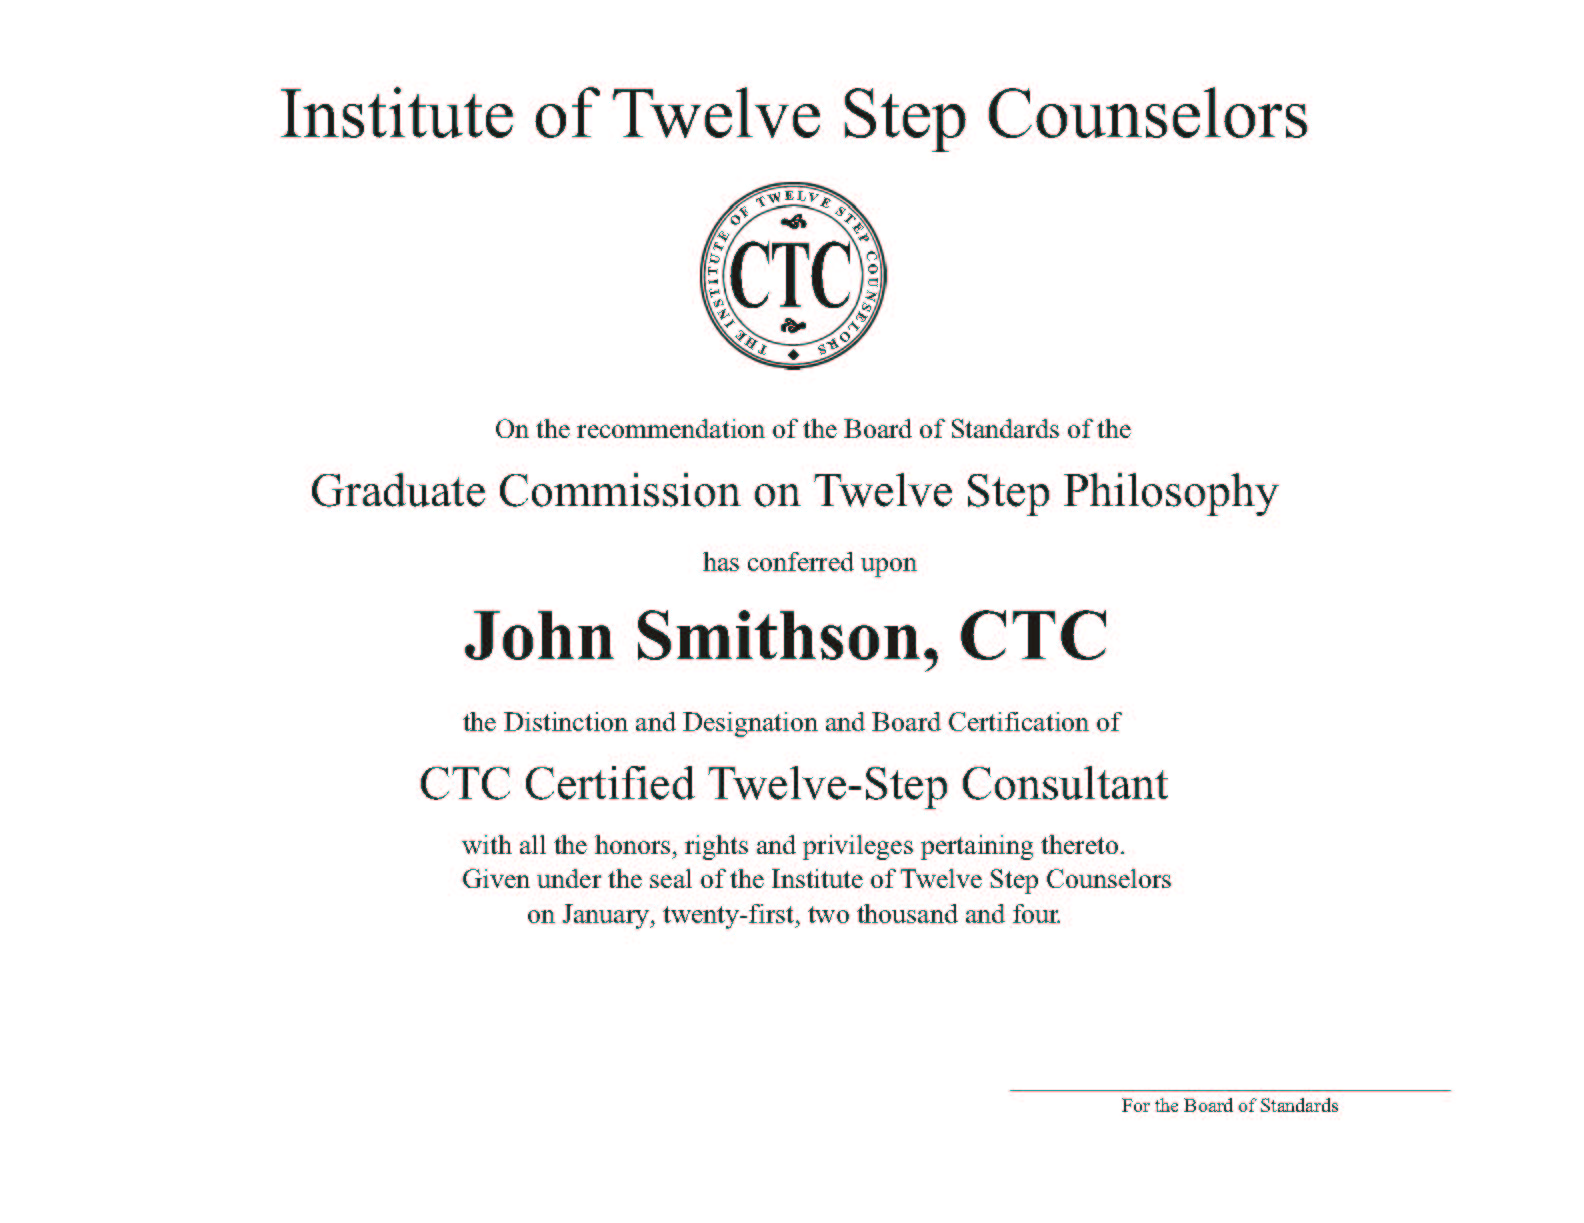 Addiction counselor substance abuse counselor addiction treatment certified in 12 step program with addiction counselor and substance abuse counselor 12 step board certification ctc xflitez Choice Image